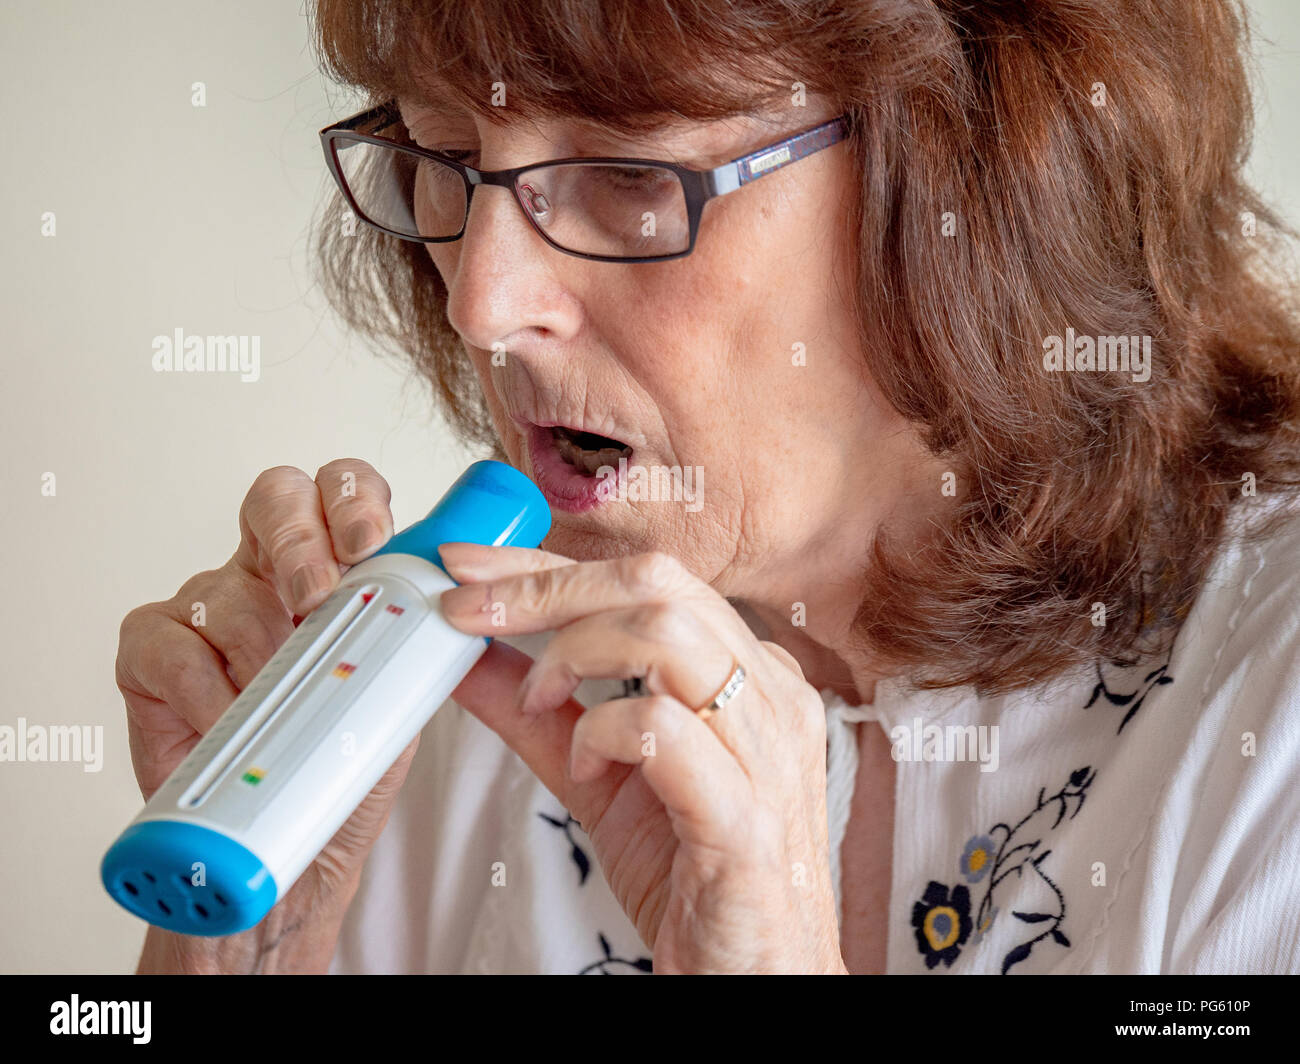 Mature lady blowing into an air flow meter to measure lung function - Stock Image